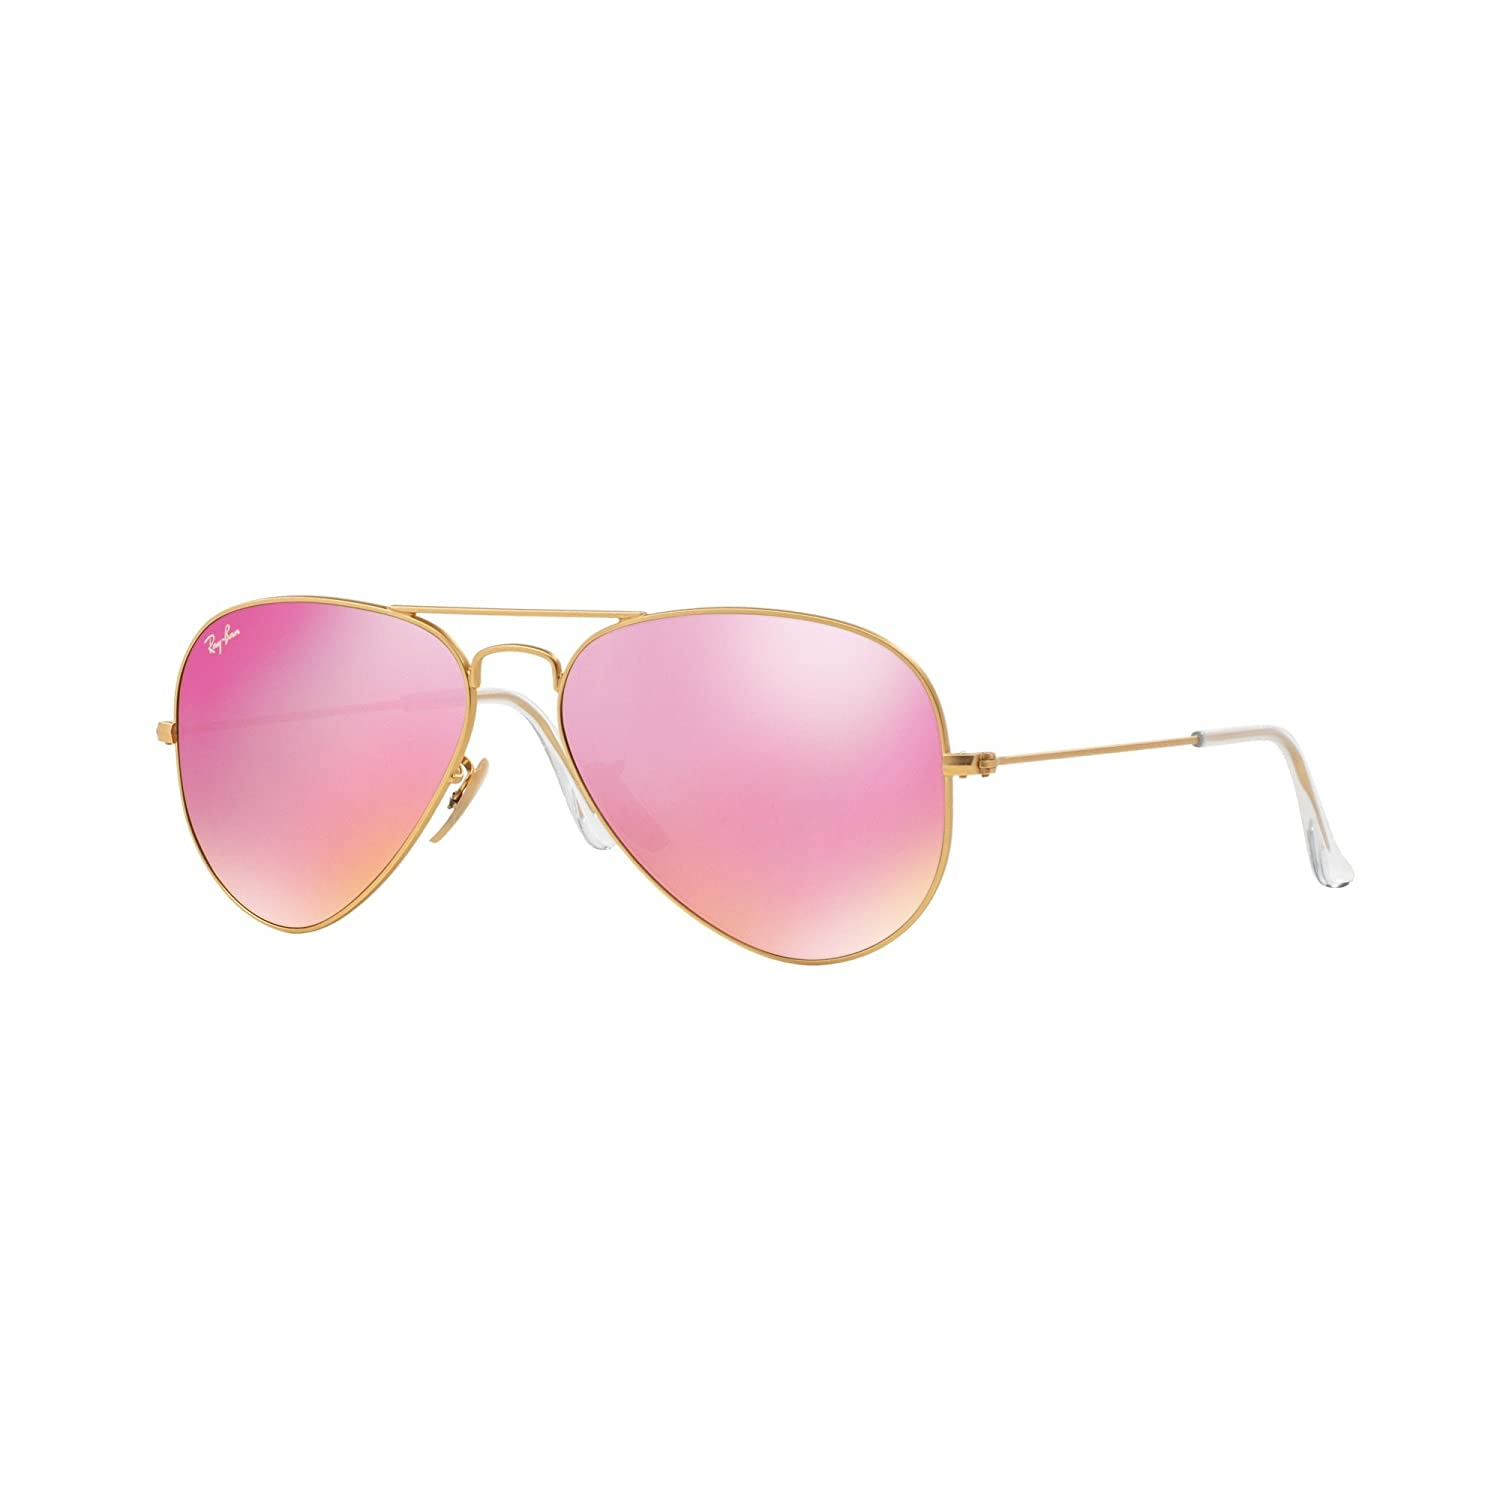 54373ce71d Ray-Ban Classic Aviator Sunglasses in Matte Gold Pink Mirror RB3025 112 4T  58  Amazon.co.uk  Clothing